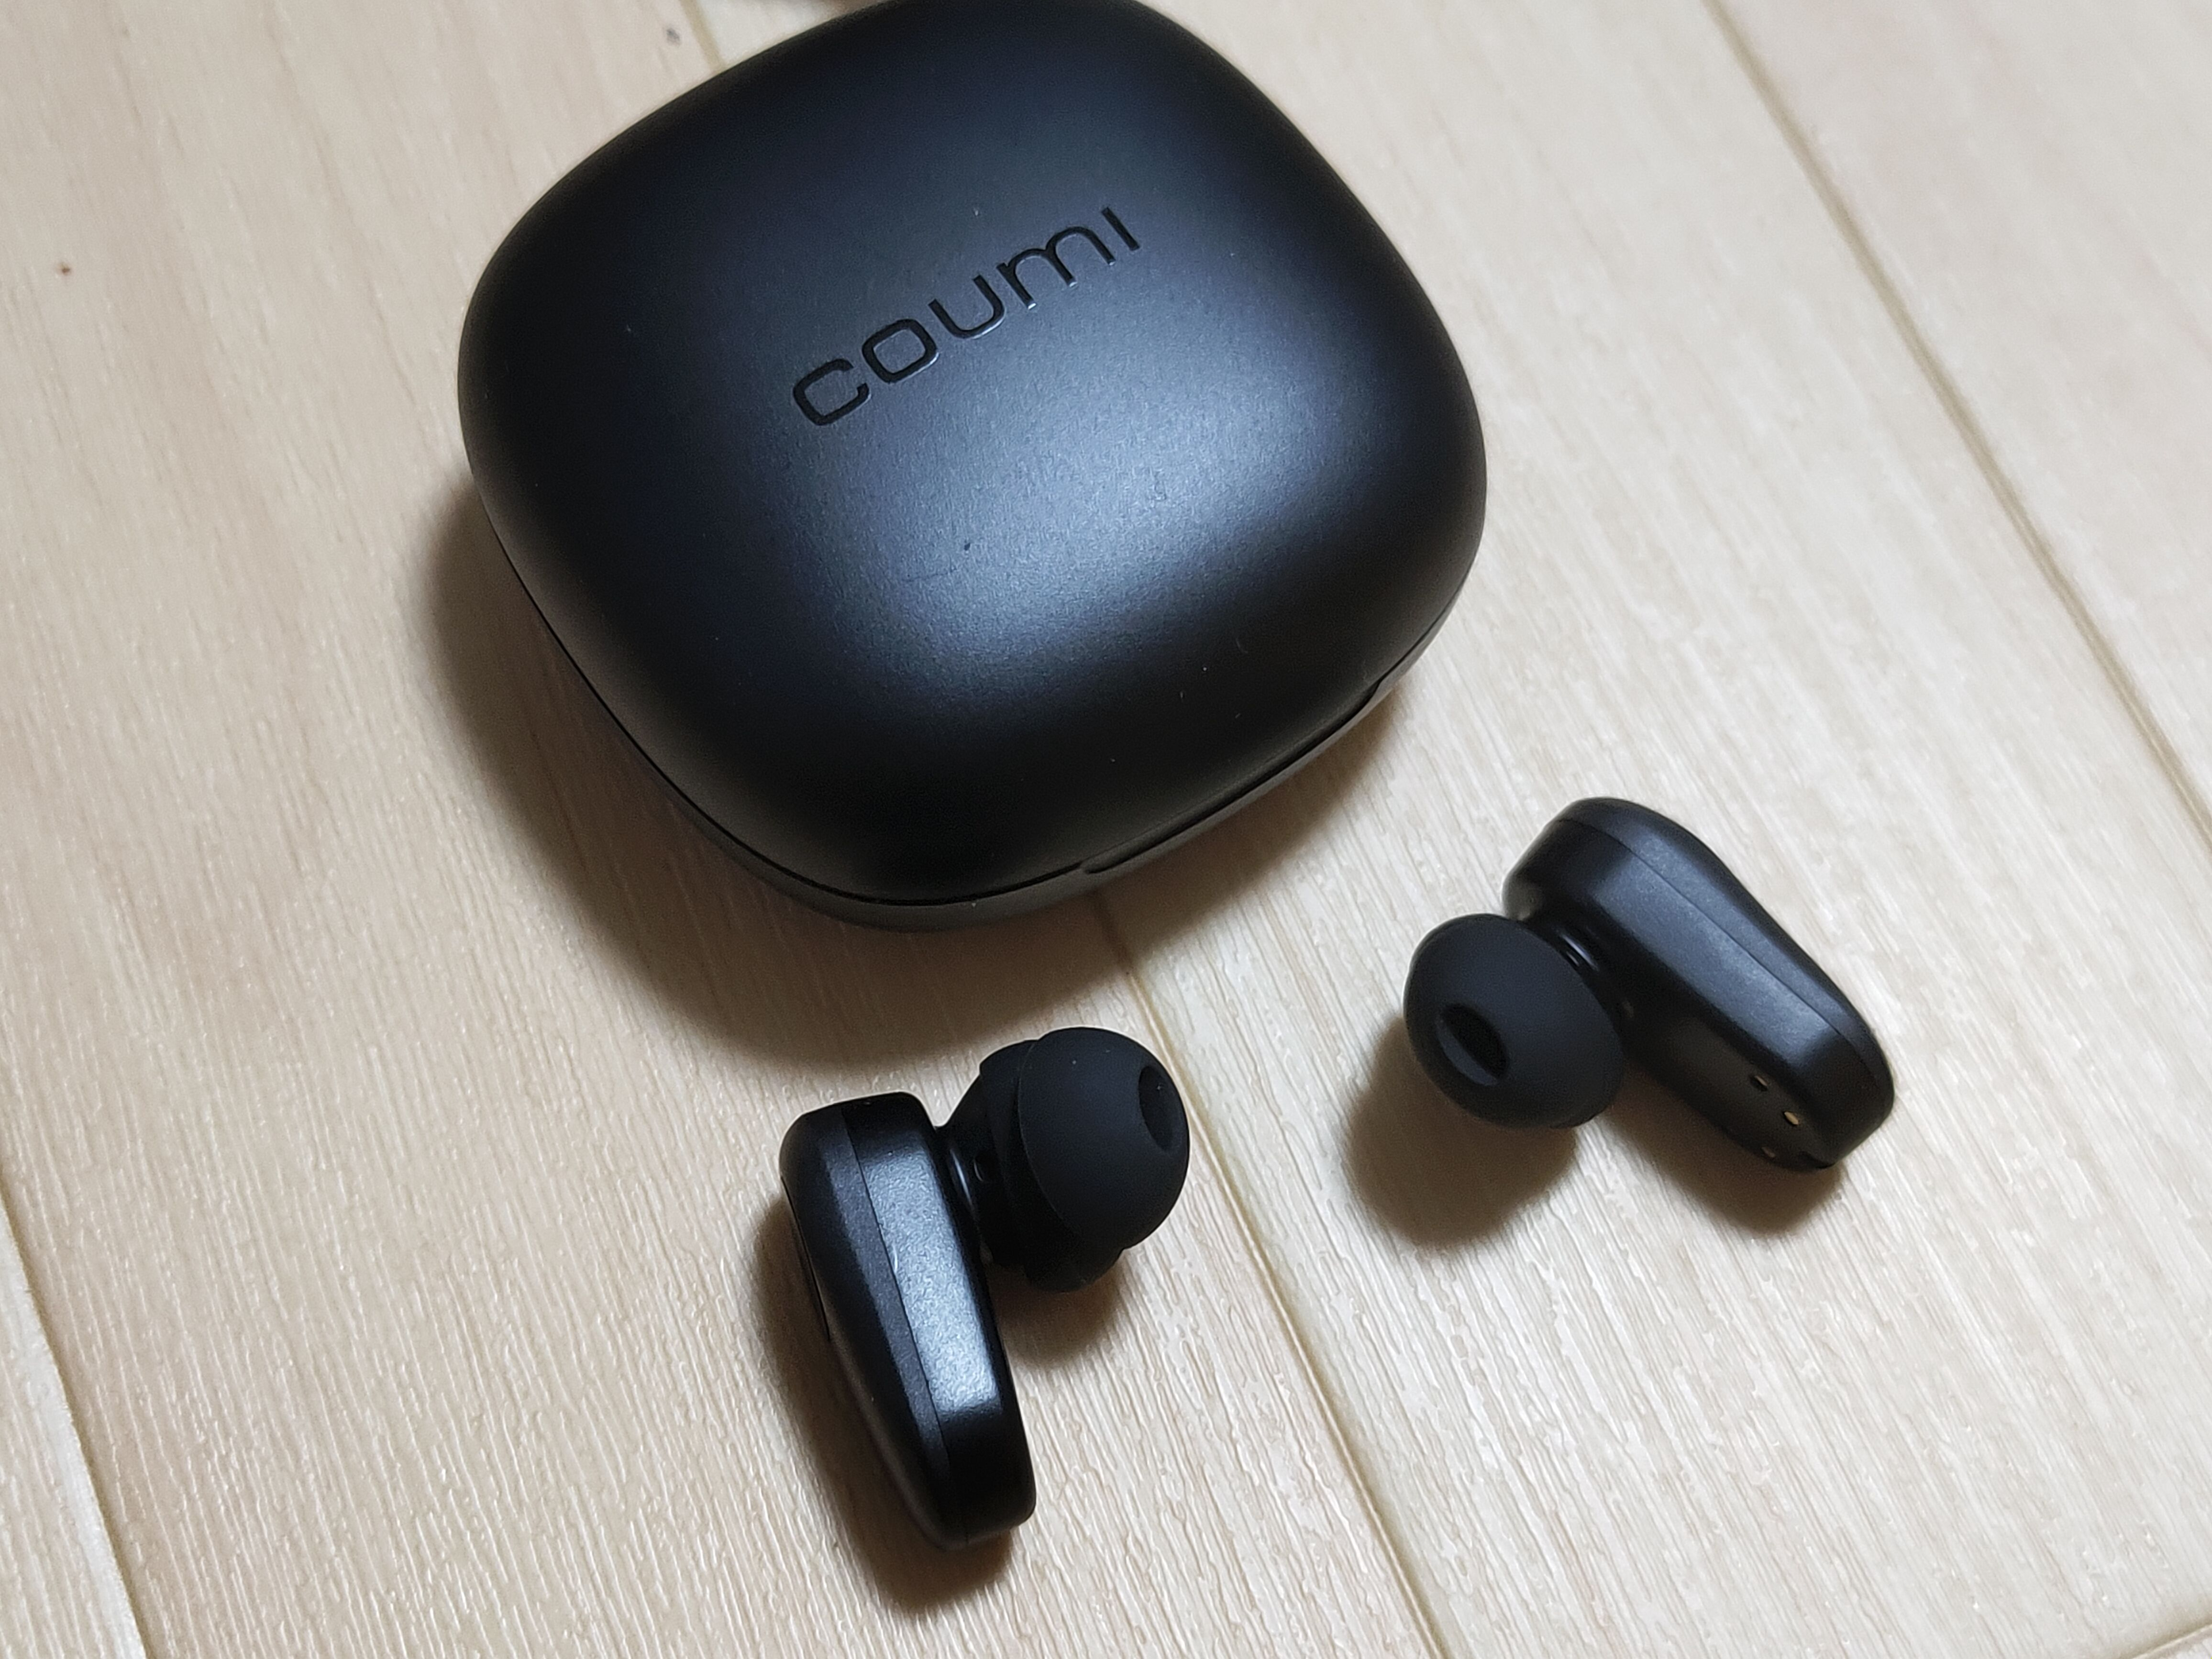 COUMI ANC-860 Review - Good Budget ANC Earphones